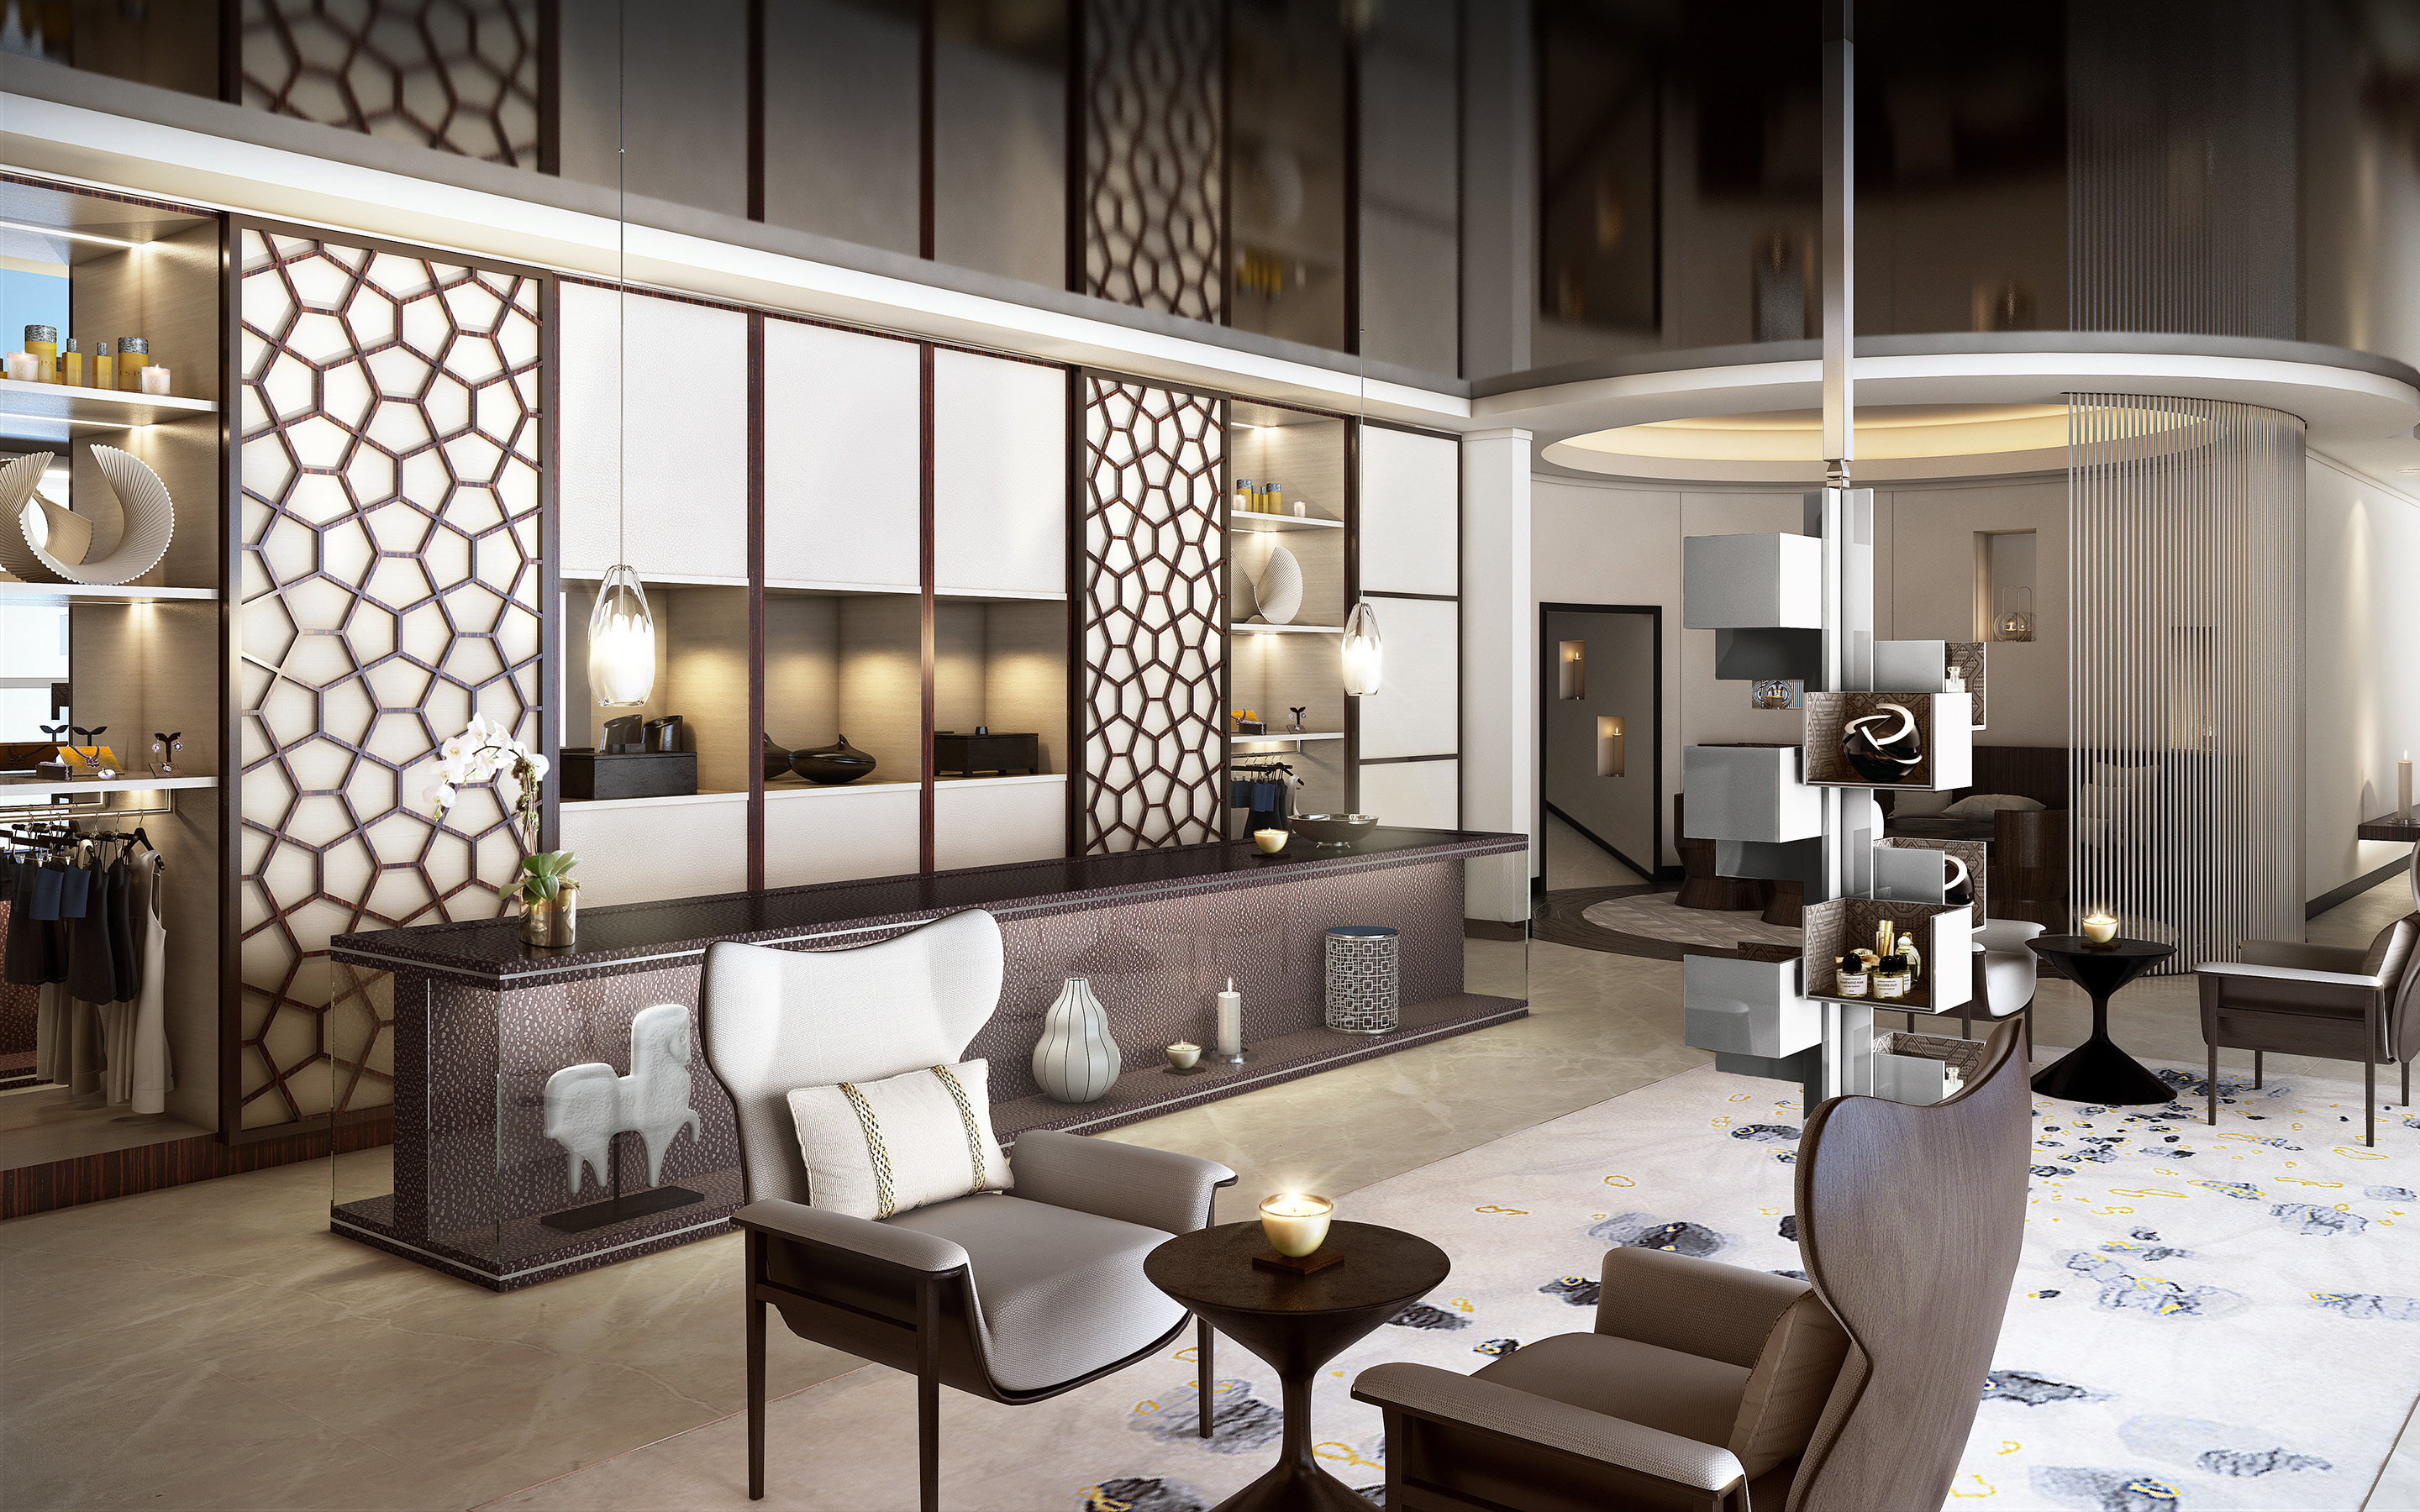 Luxury hotel qatar the gettys group for Small design hotels